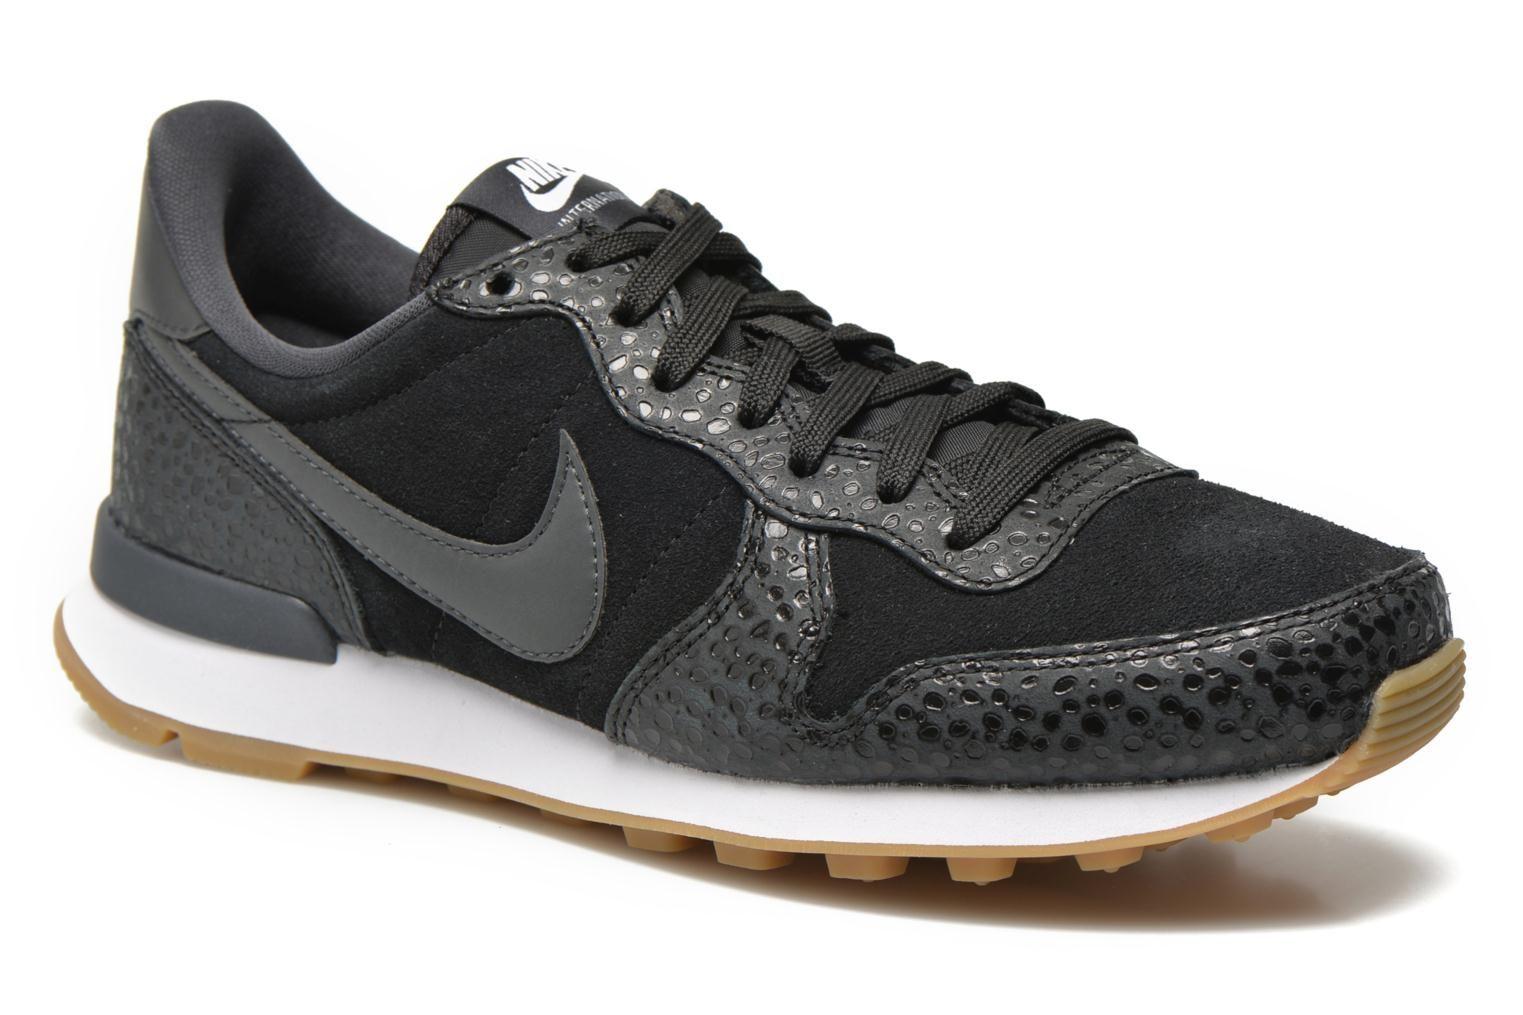 165dbbb16b4 Cómpralo ya!. W Internationalist Prm by Nike. ¡Envío GRATIS en 48hr ...